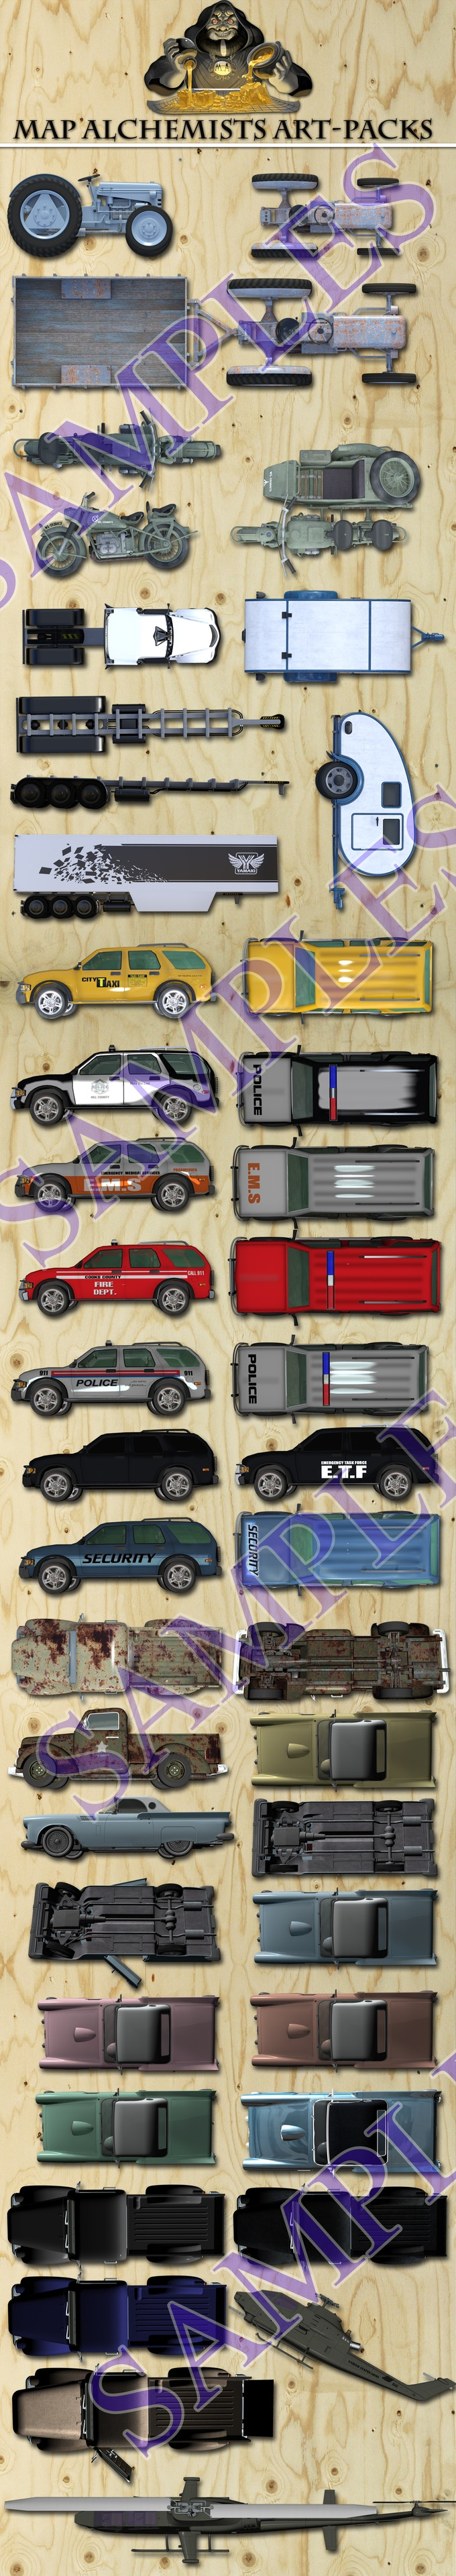 vehicles from the vehicles campaign